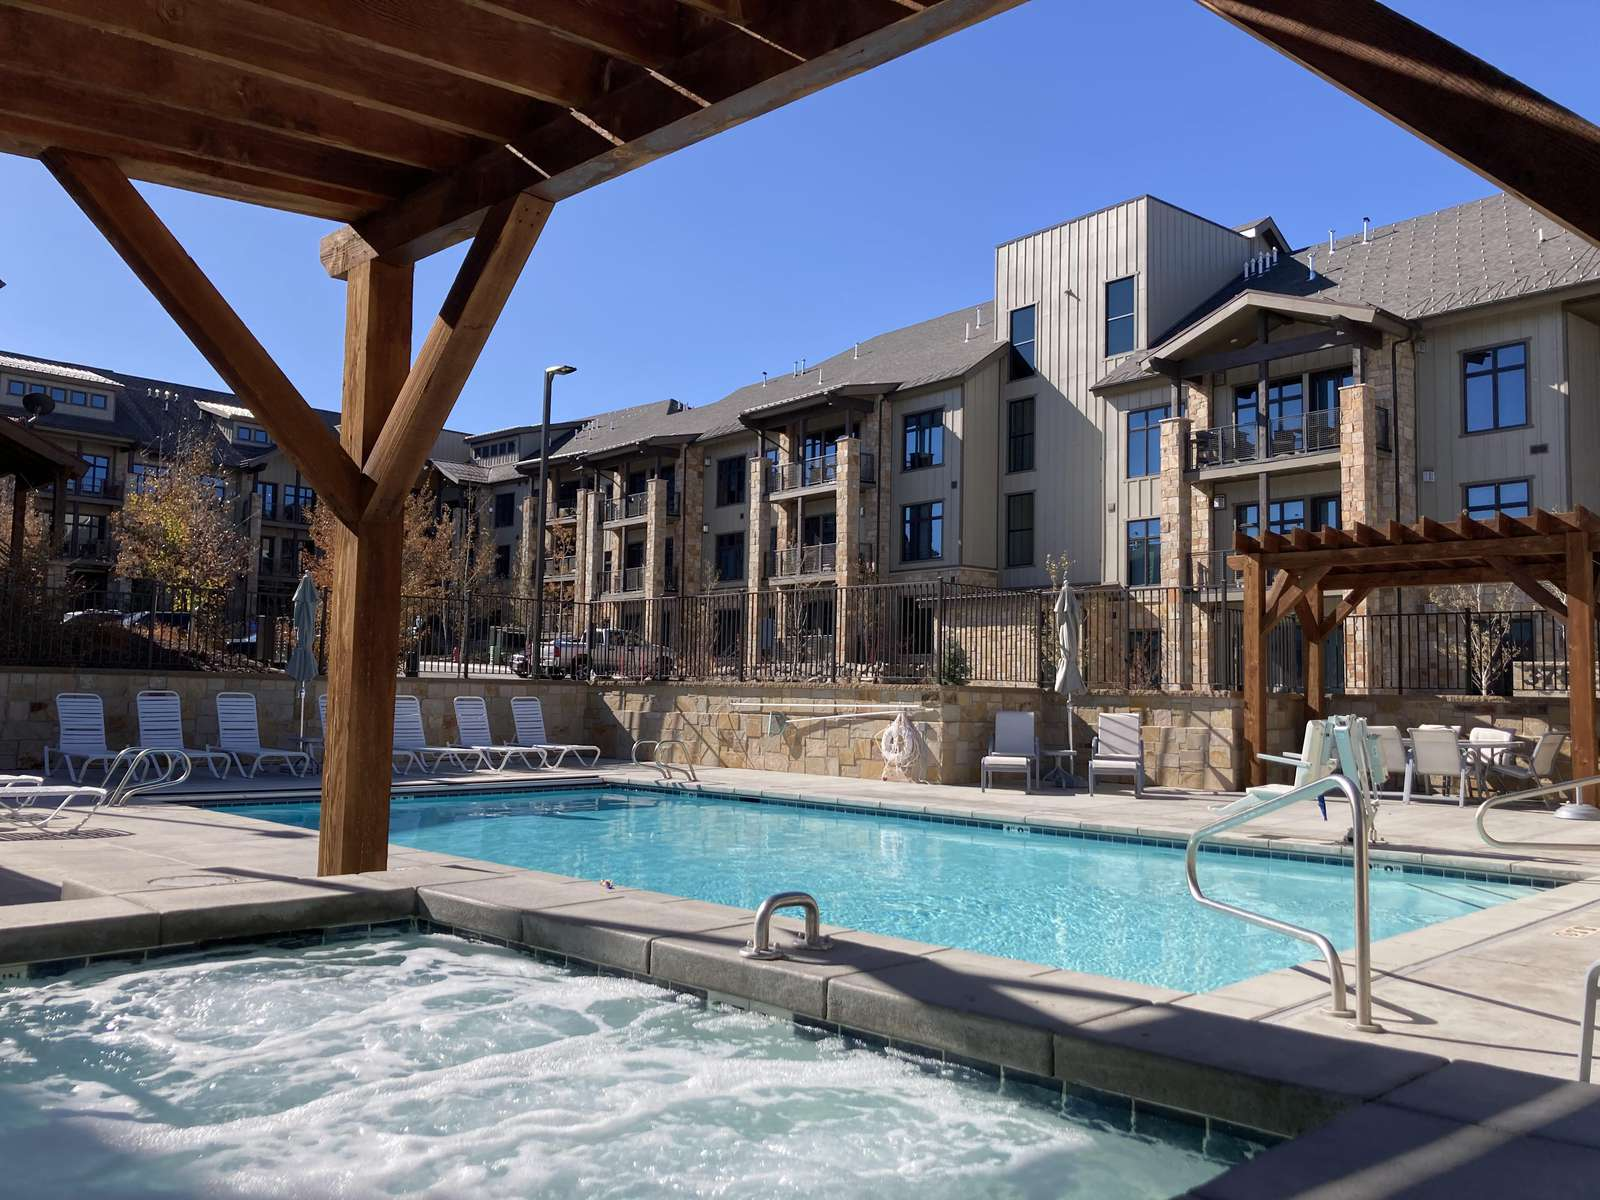 The community spa and pool are heated all year long